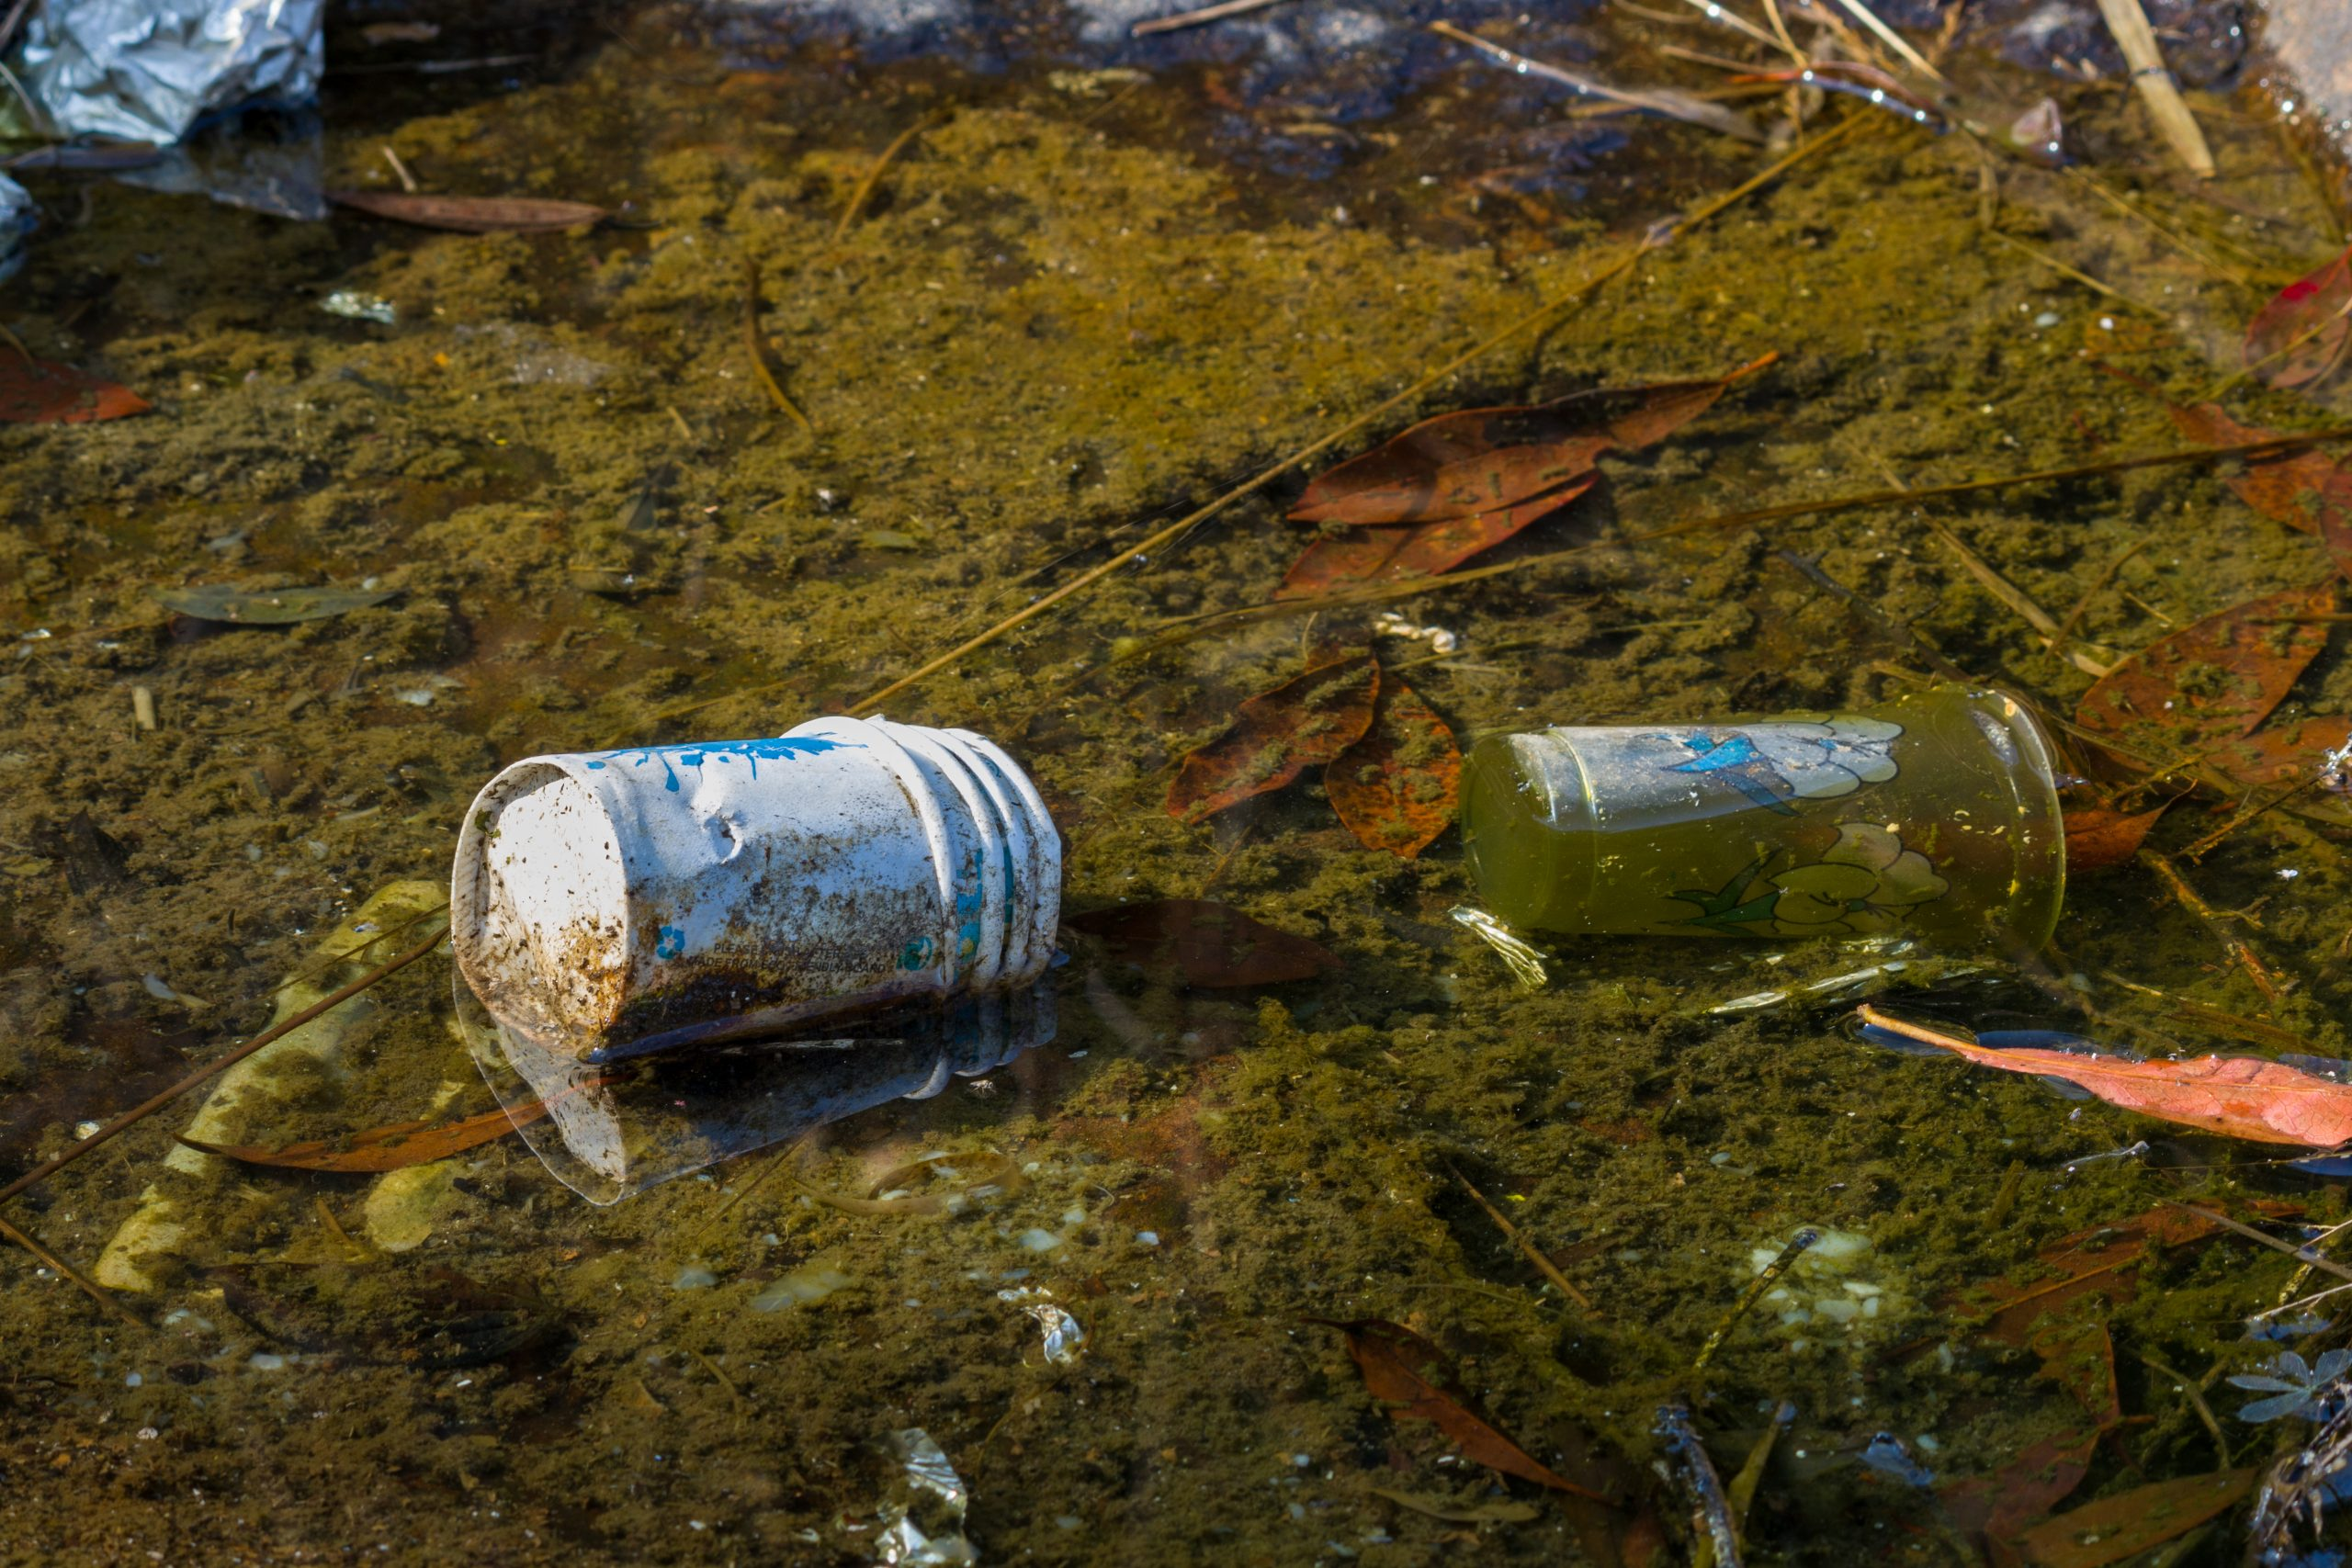 Waste and litter polluting water